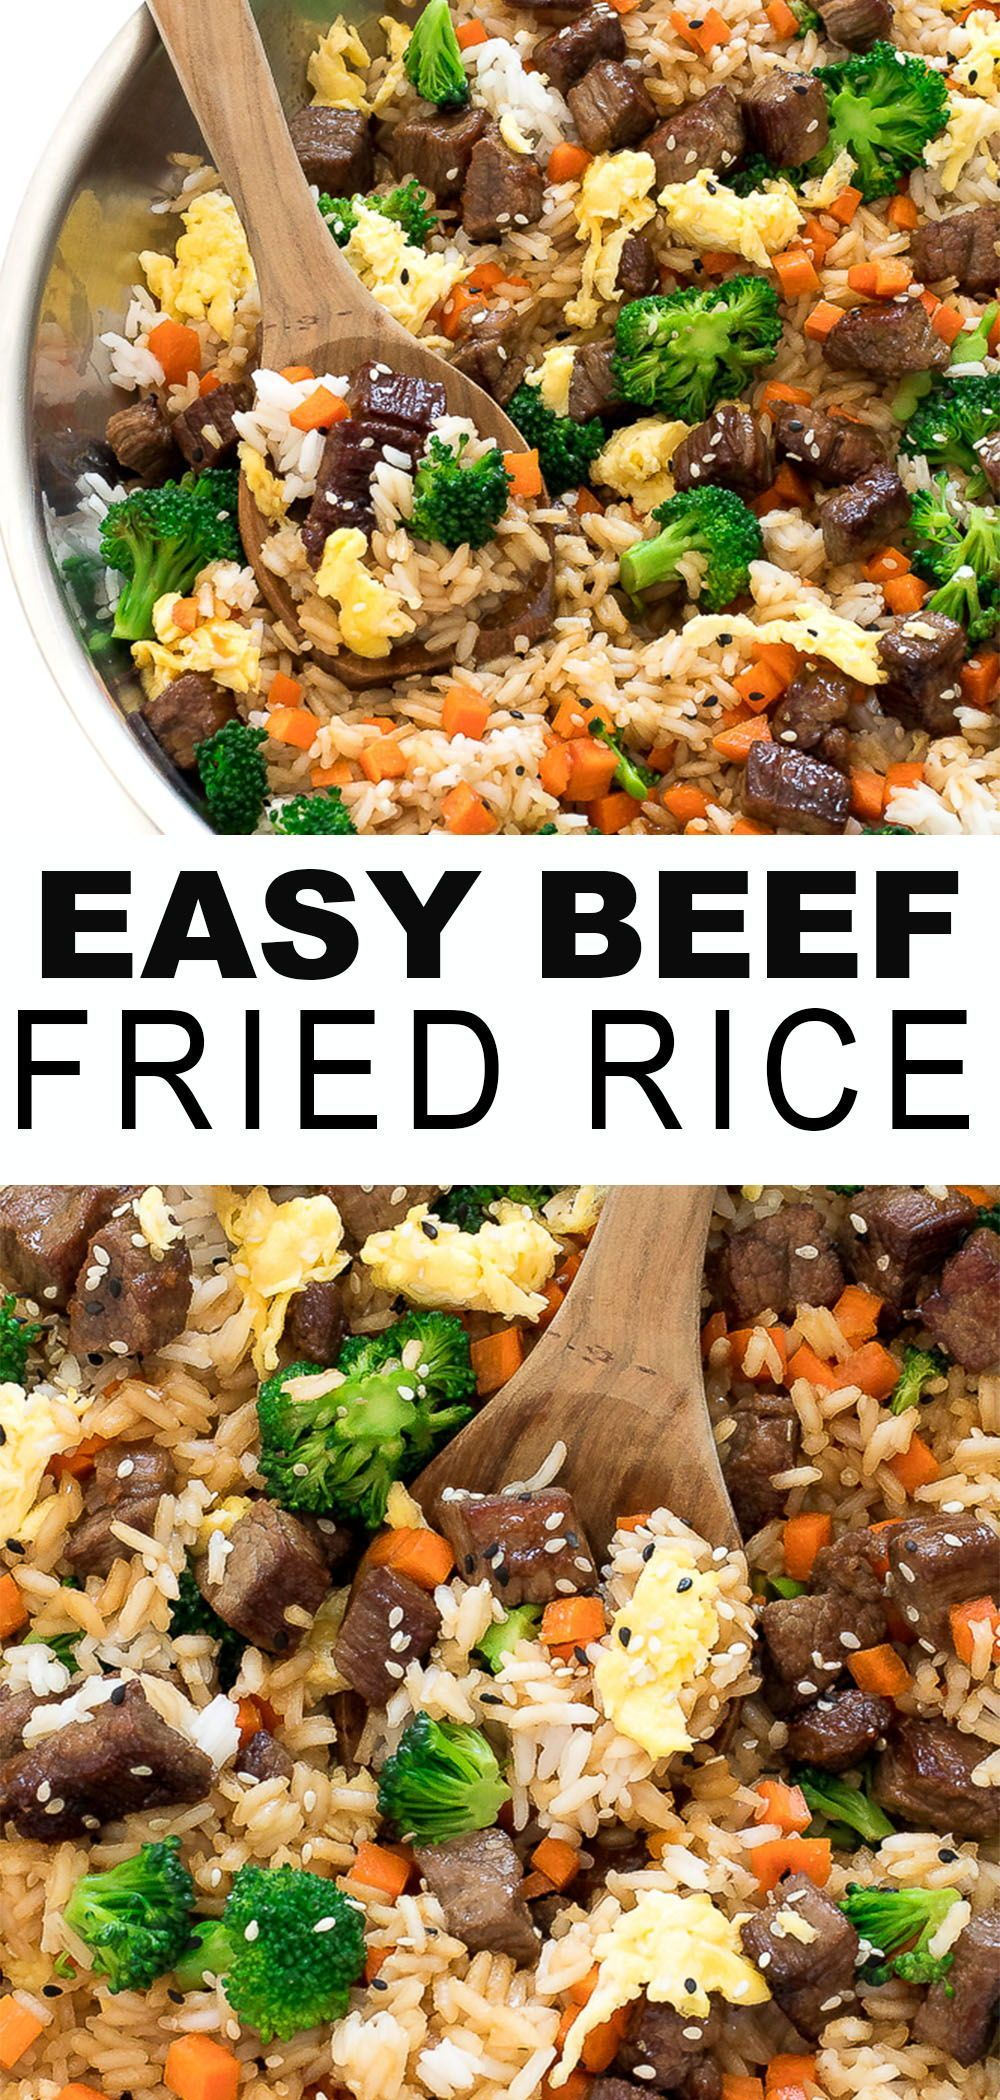 Easy Beef Fried Rice - Chef Savvy